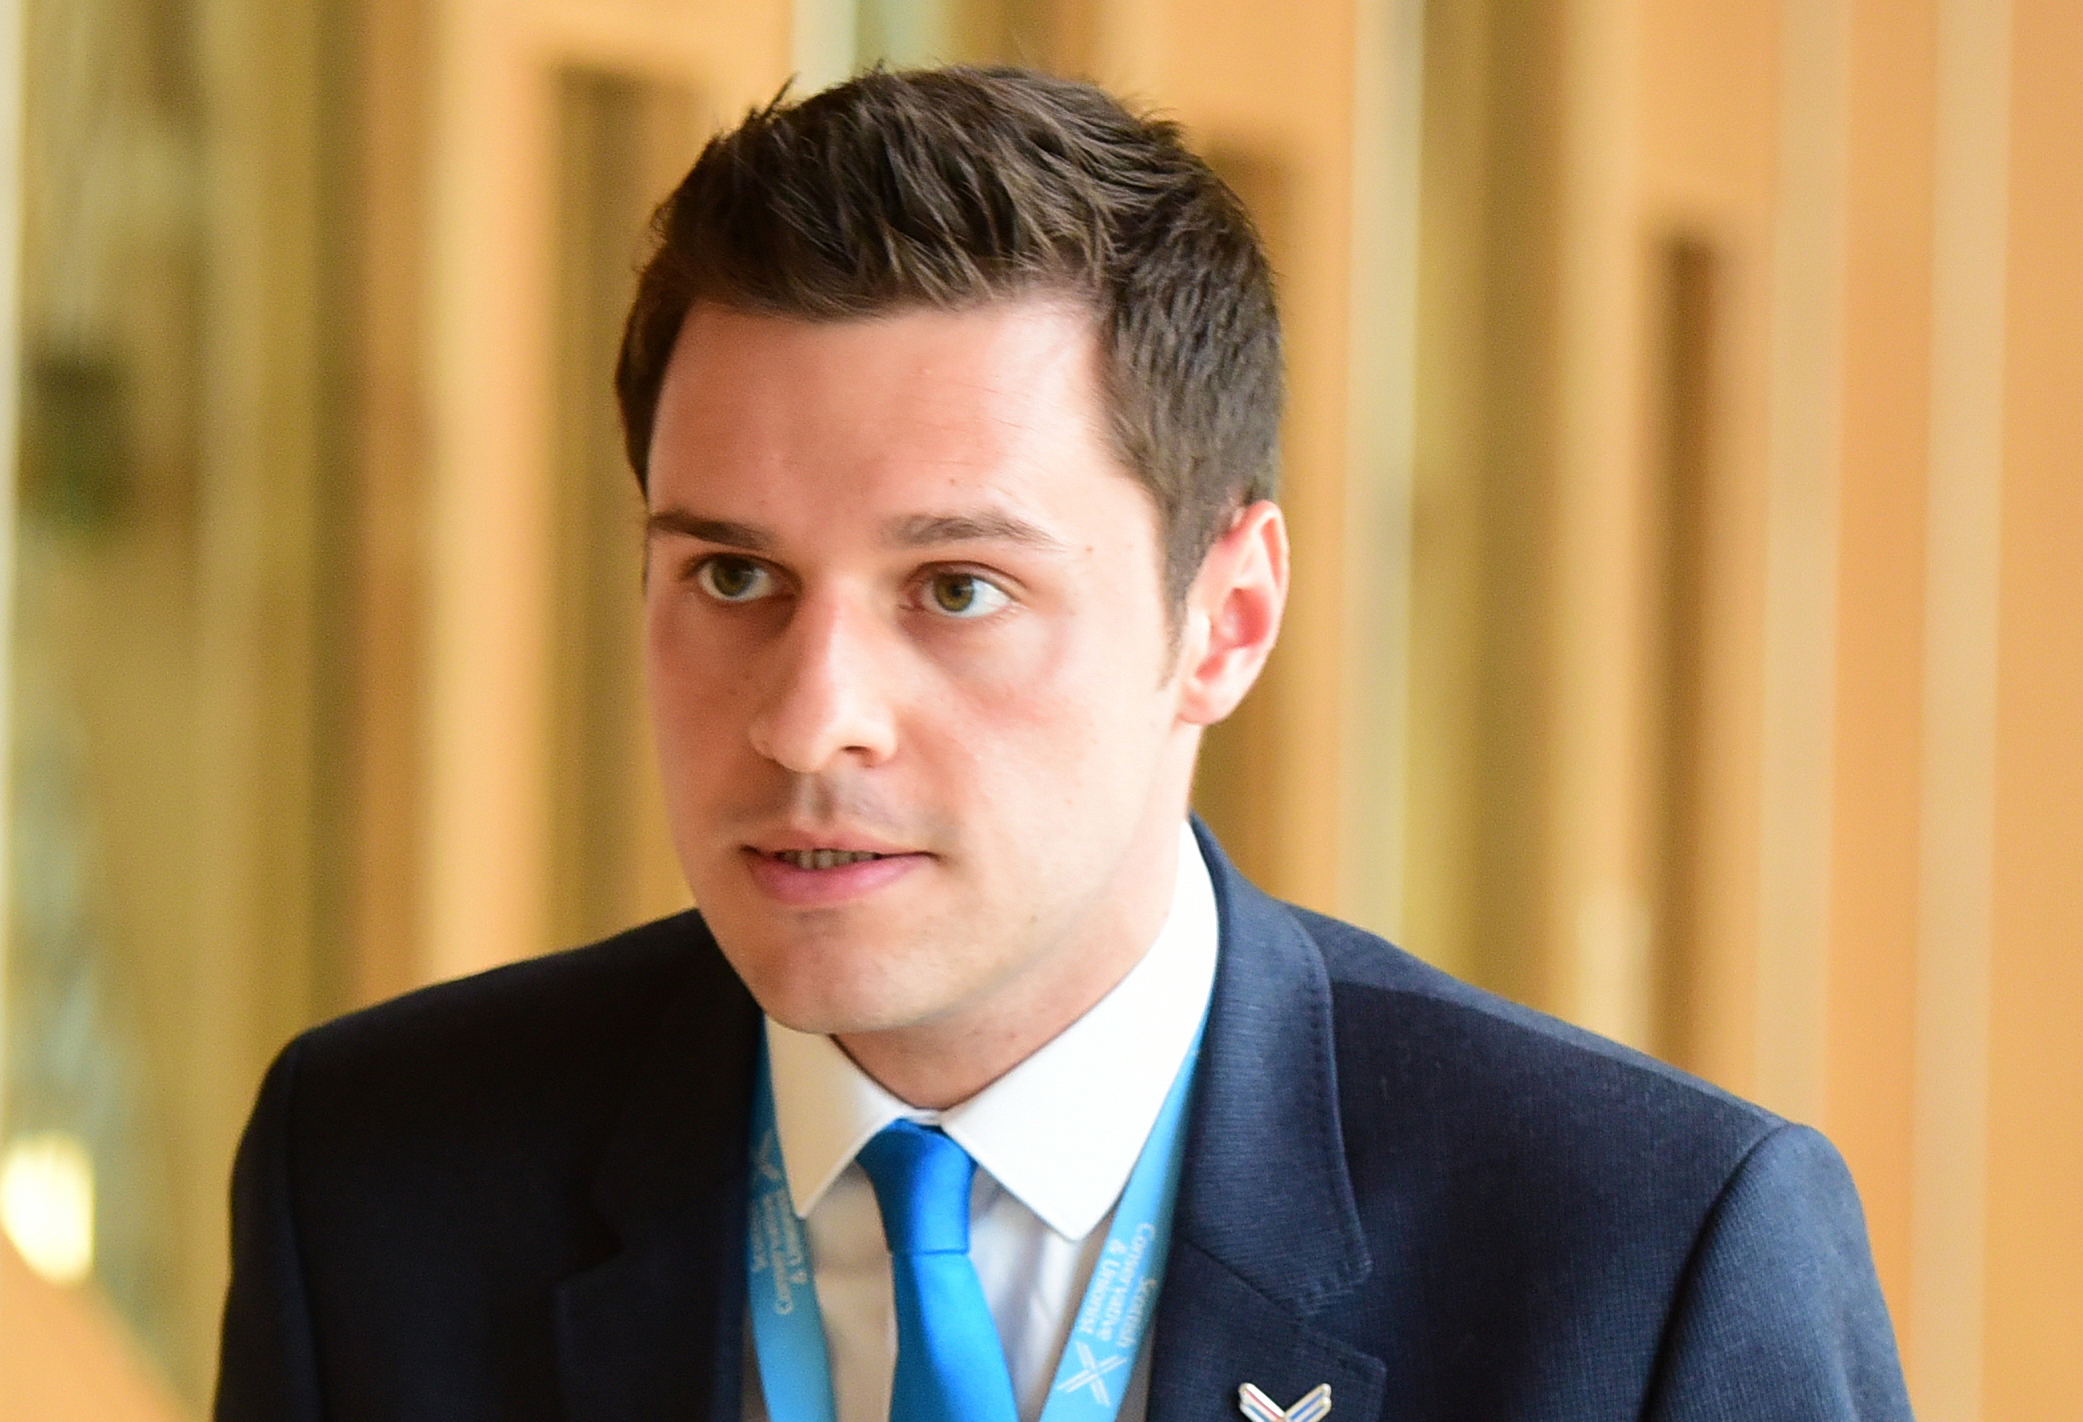 Ross Thomson said it would leave the UK in a 'state of vassalage'